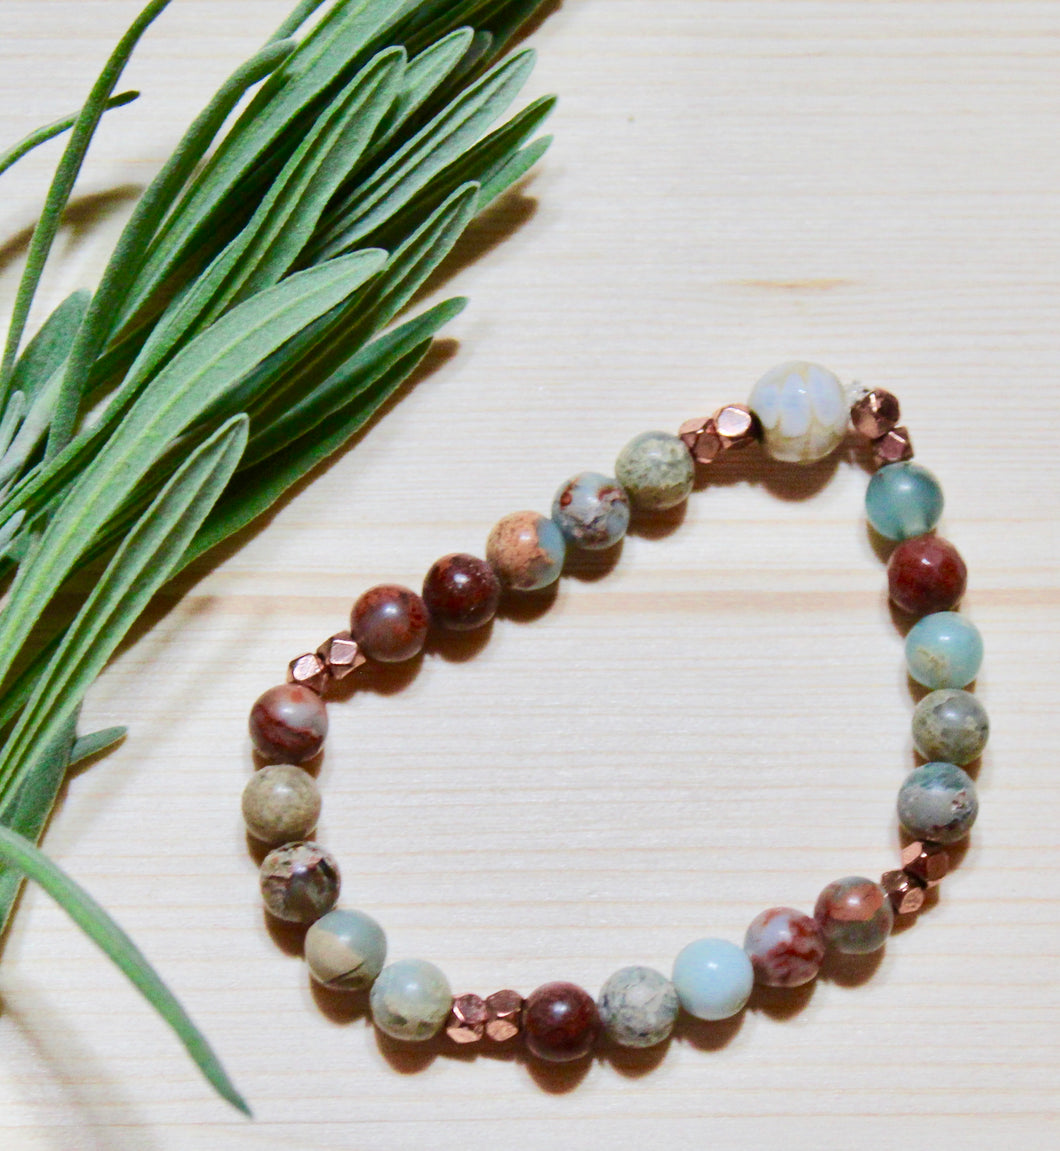 Stone Bracelet- Aqua Terra and Fire Agate with Copper Beads